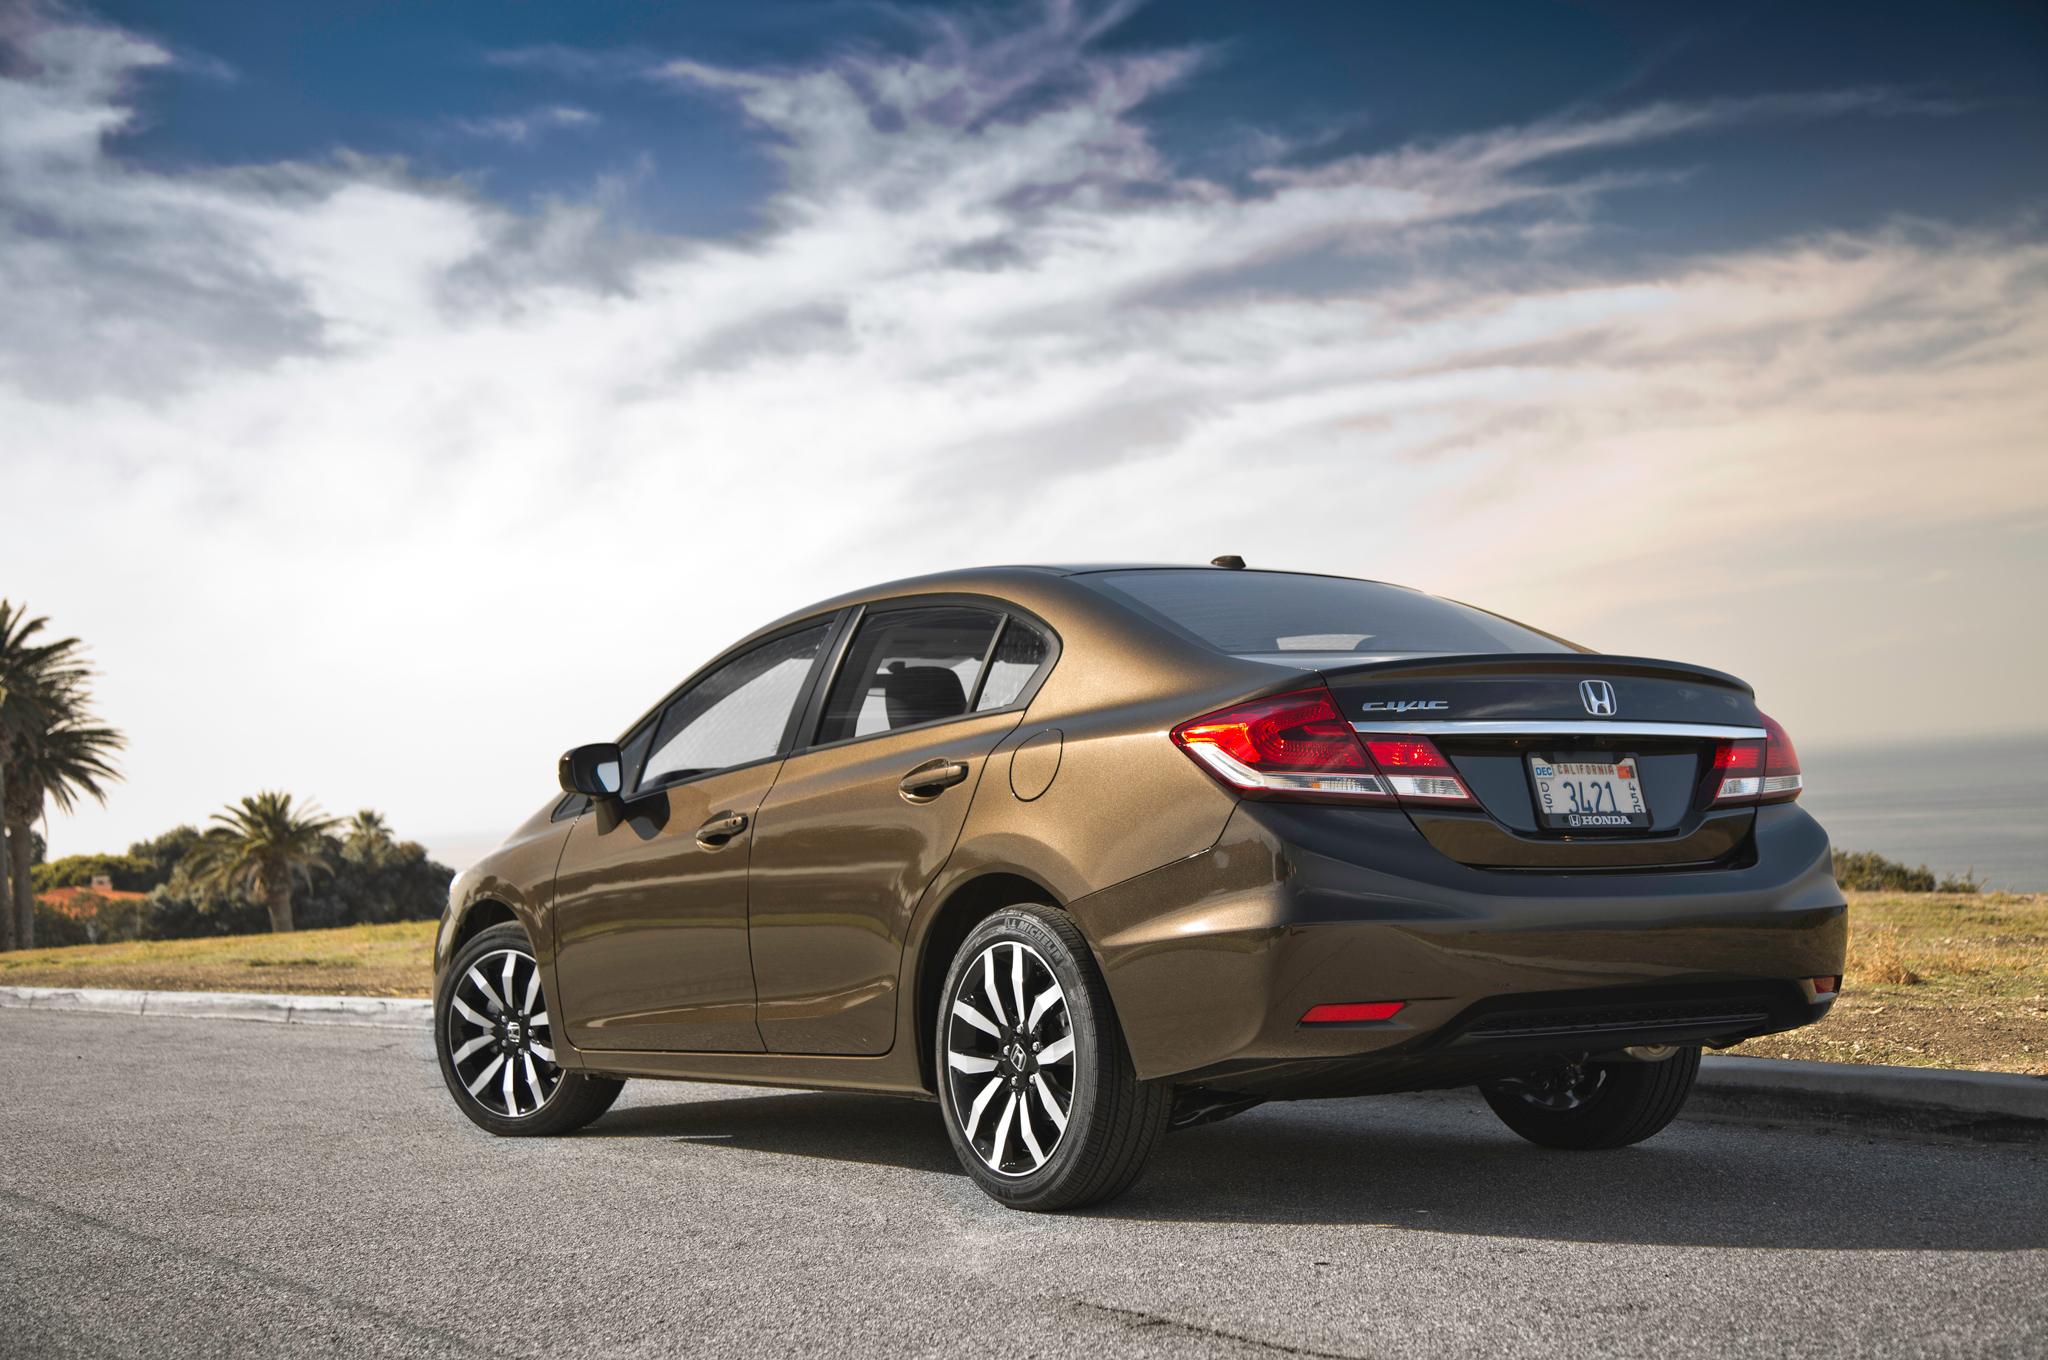 Exports Of U.S. Made Hondas Outnumber Imports From Japan